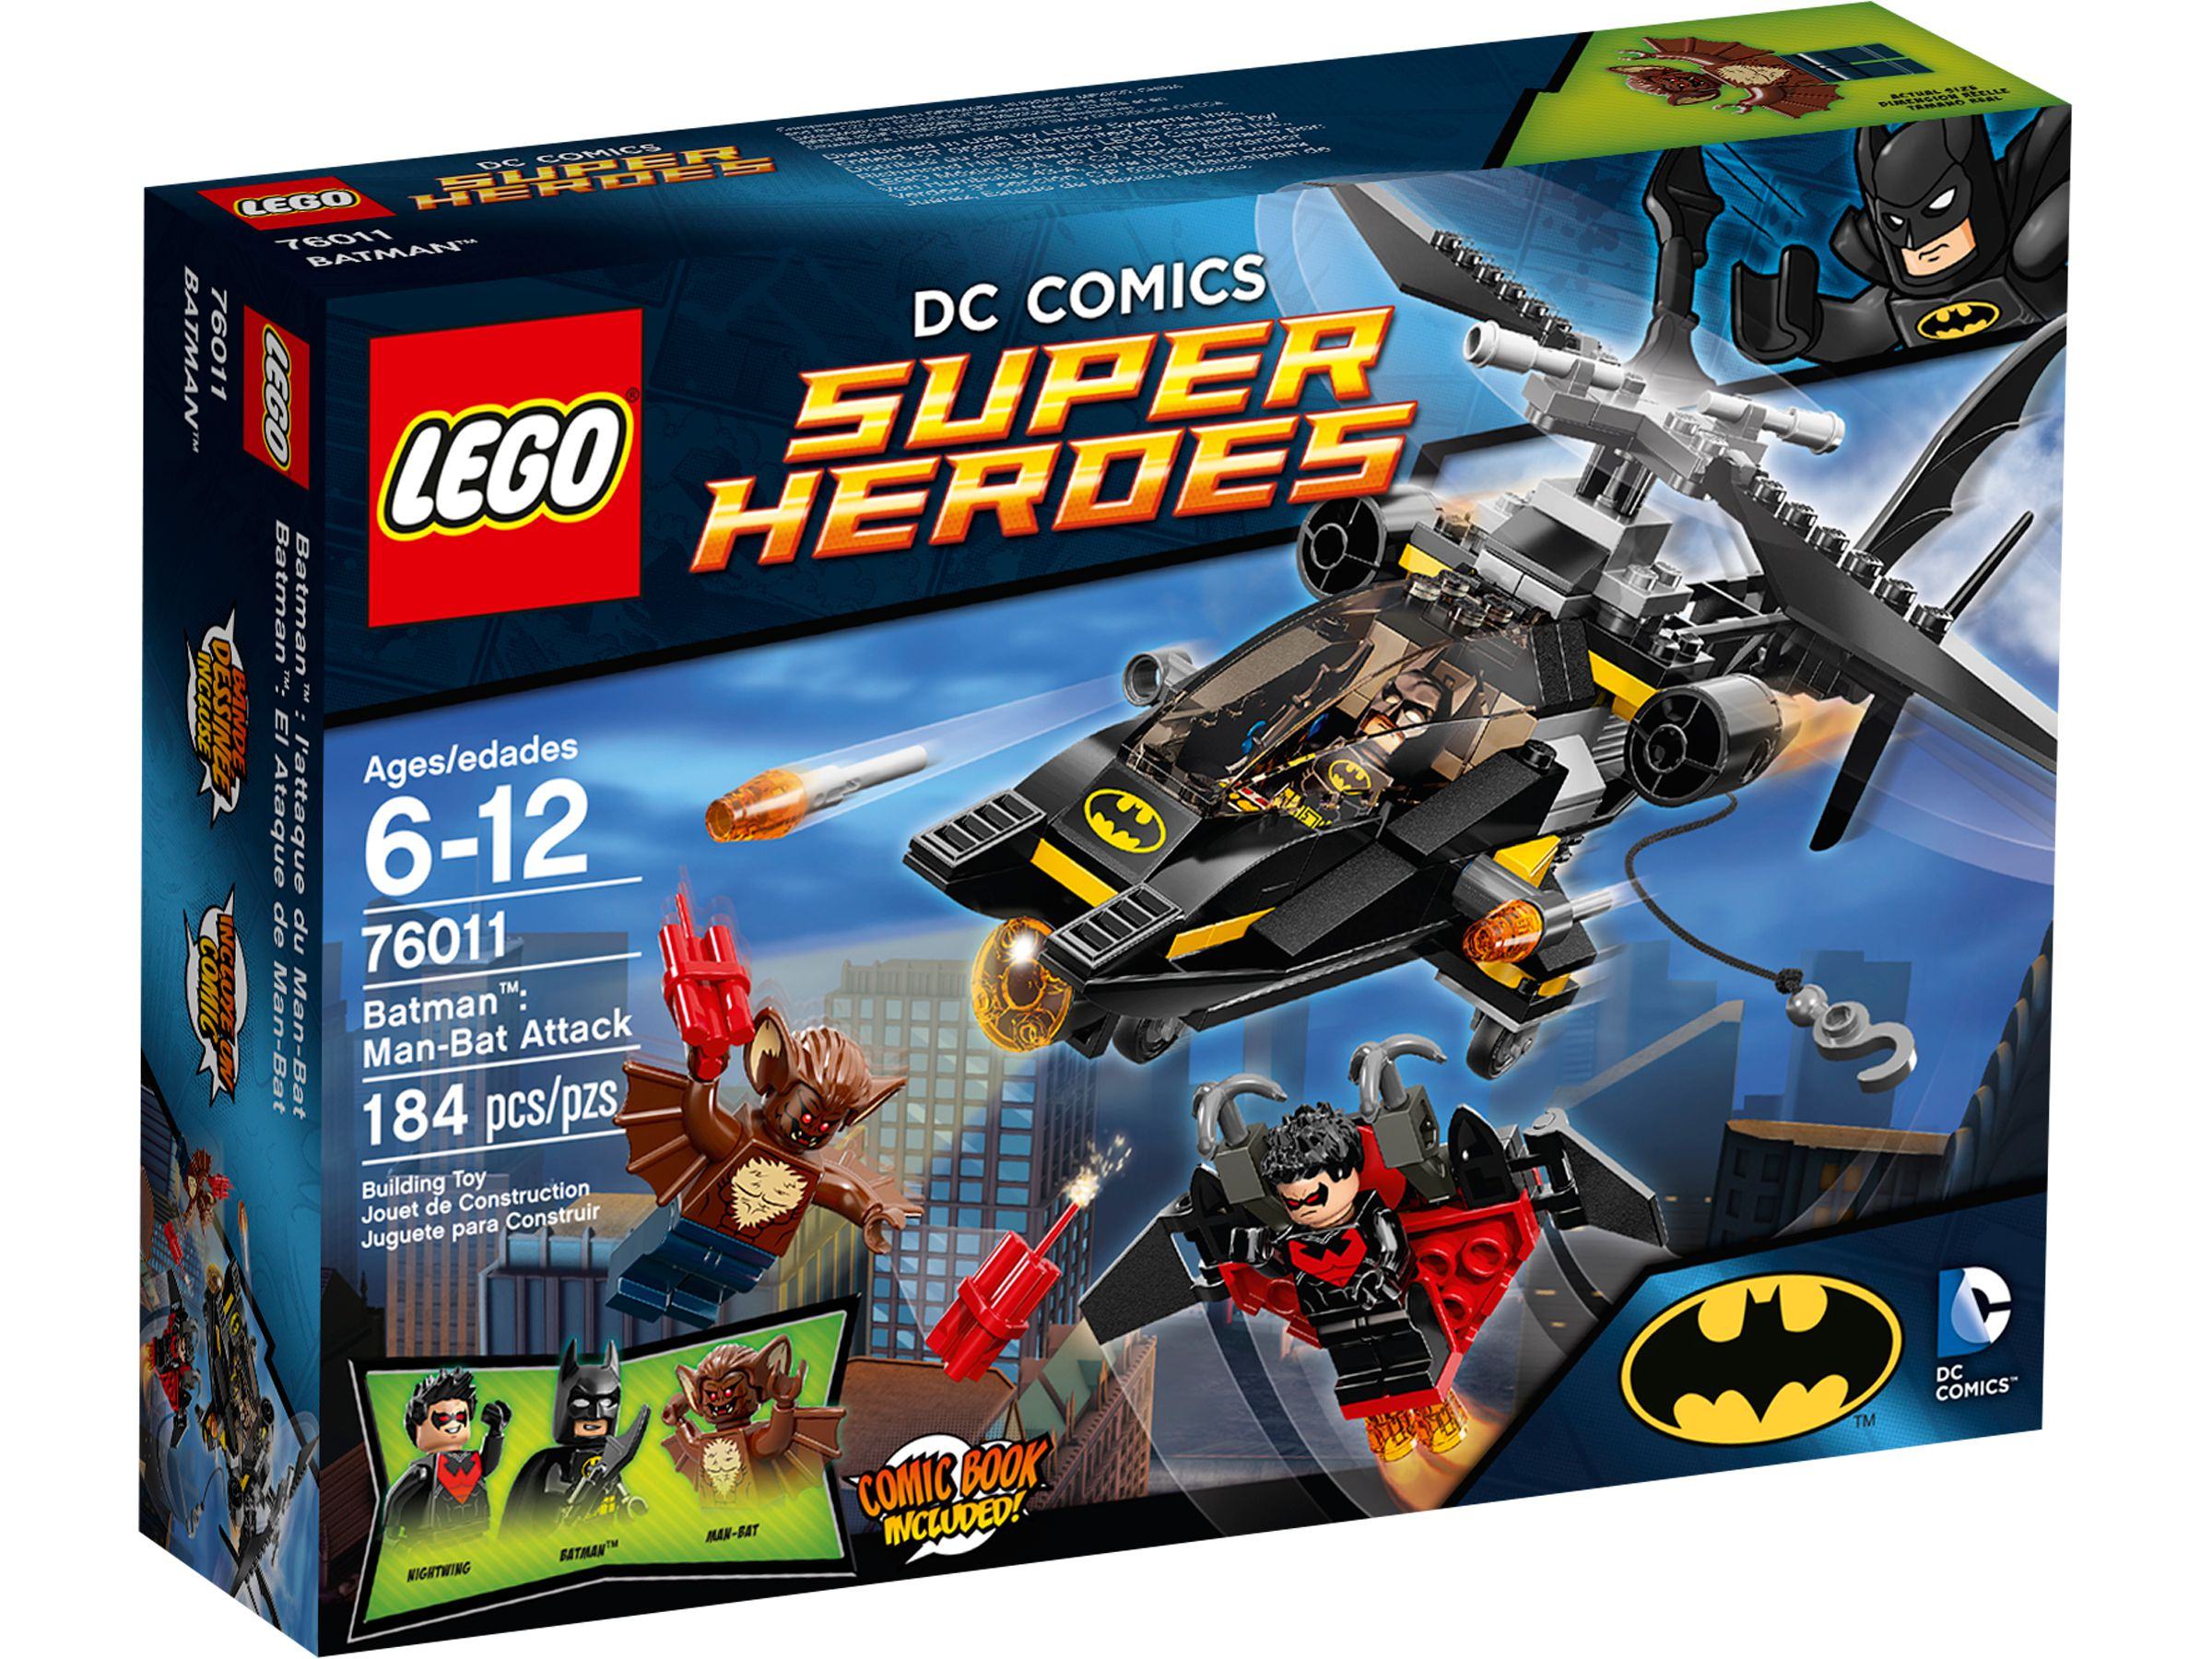 LEGO Super Heroes 76011 Batman™: Man-Bats Attacke LEGO_76011_alt1.jpg